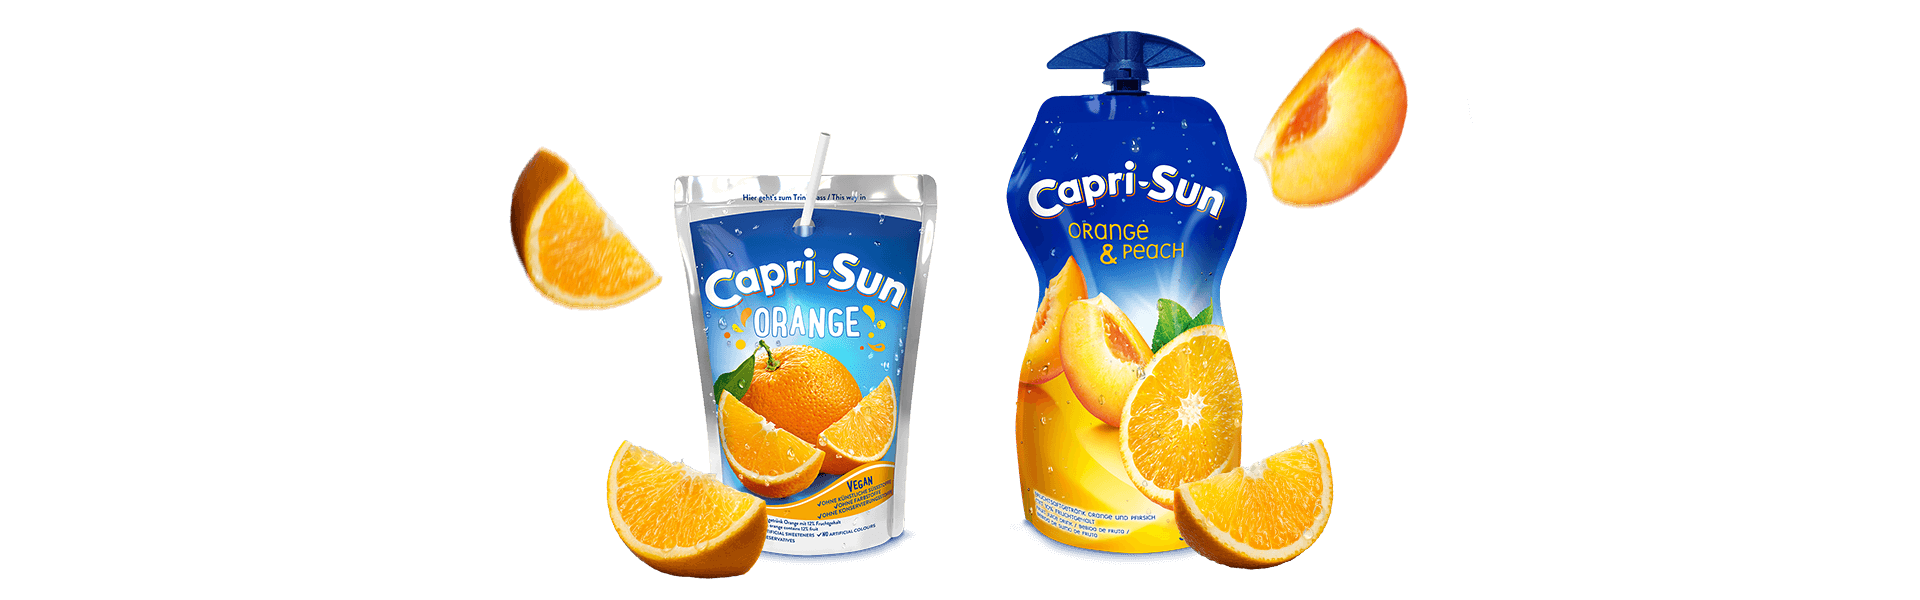 Capri-Sun_Orange_200ml_200ml_and_Orange_and_Peach_330ml_with-flying-fruits_picture-1024x320_v2